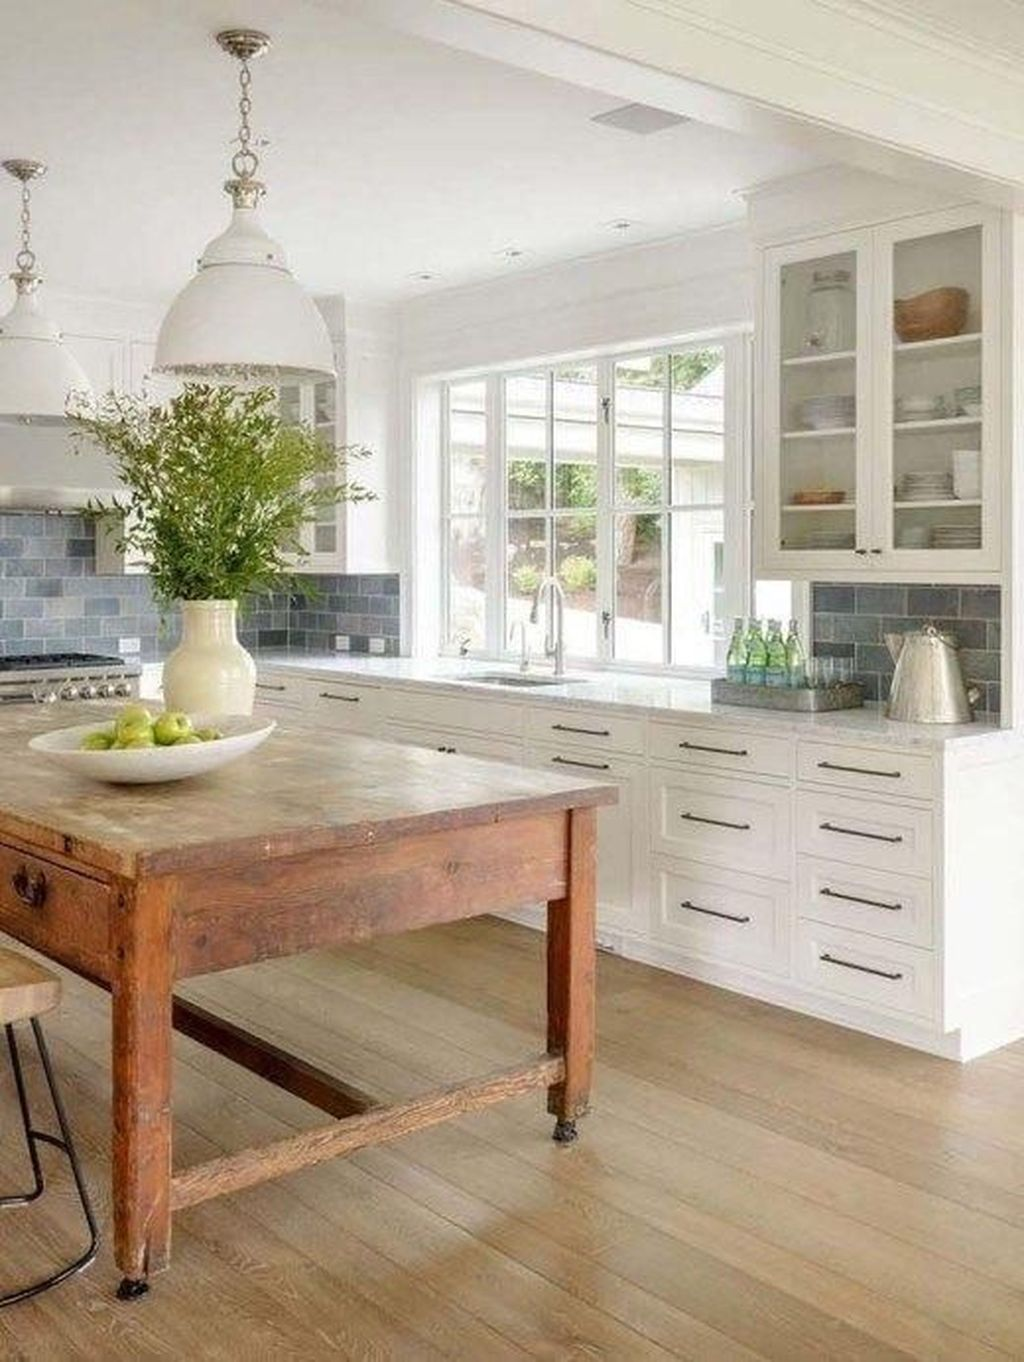 Stunning Farmhouse Kitchen Island Design Ideas 09